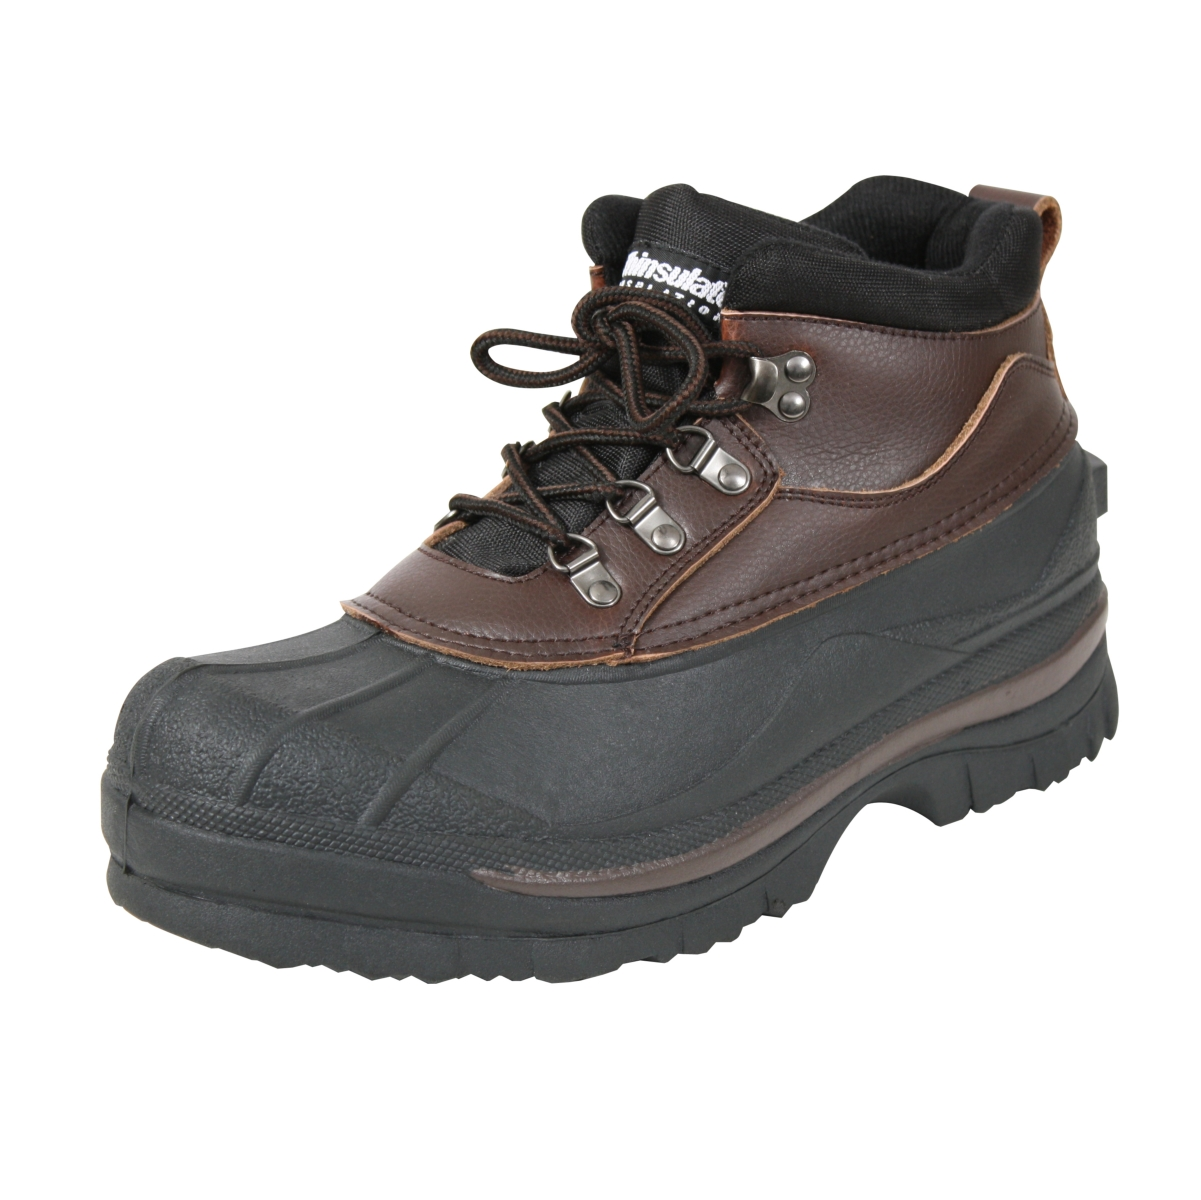 Rothco Warm Thinsulate-lined Cold Weather 5